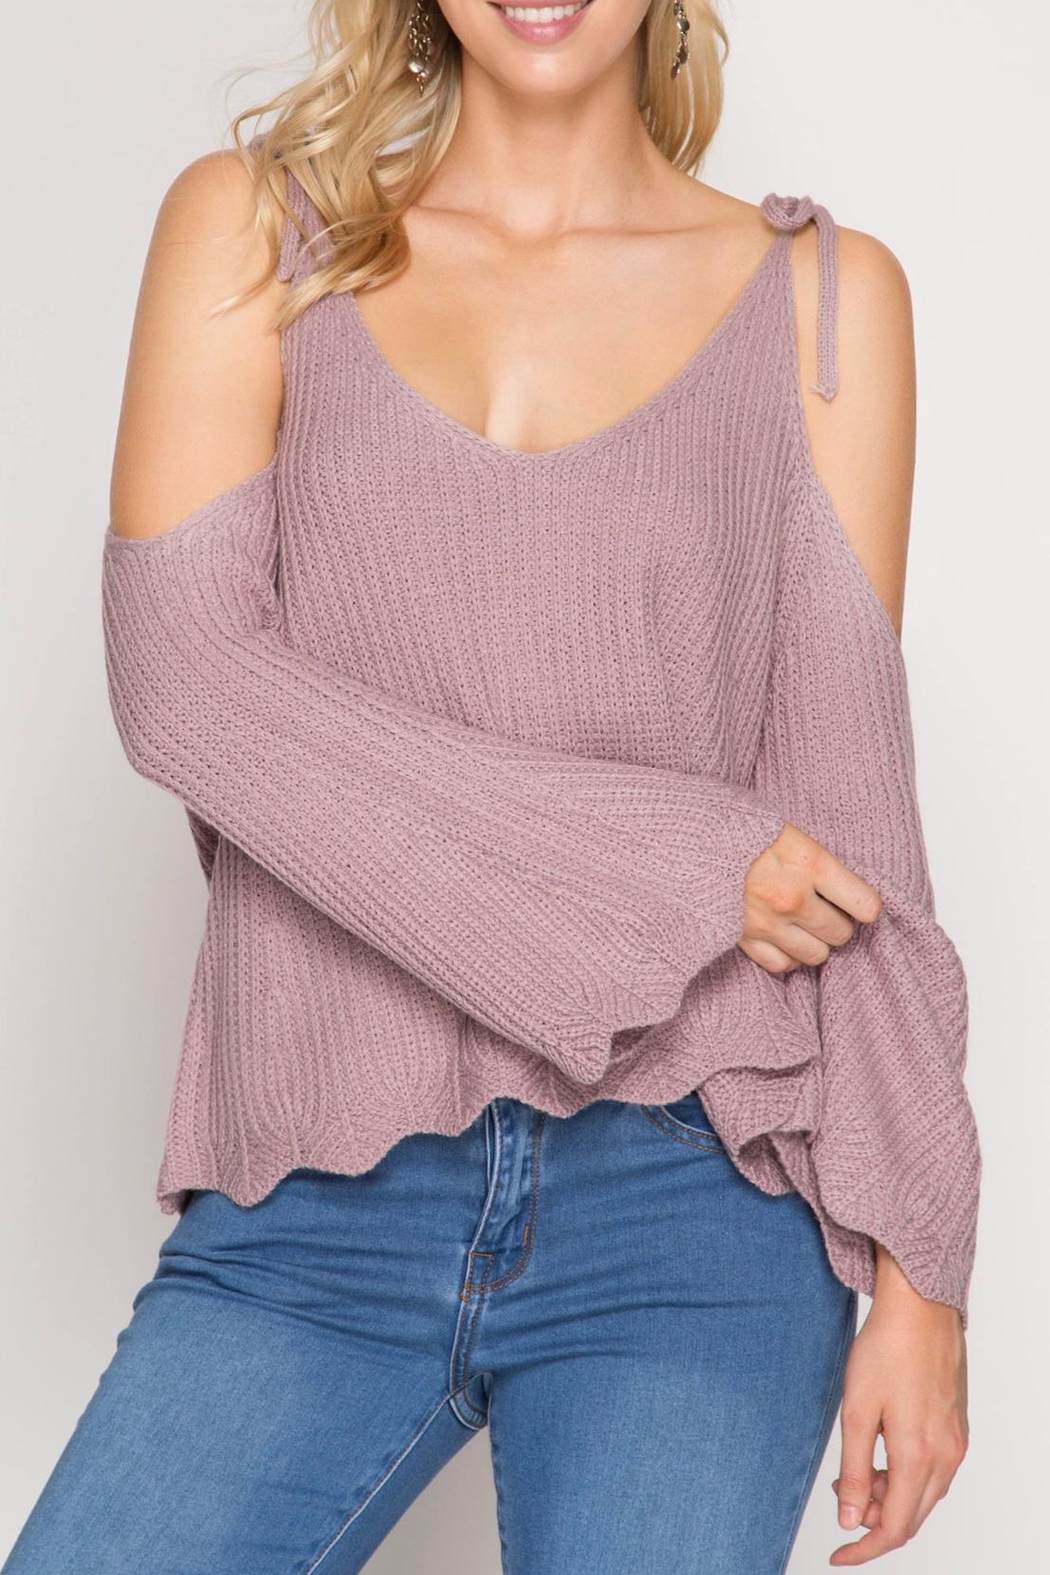 She + Sky Scallop Detail Sweater - Main Image